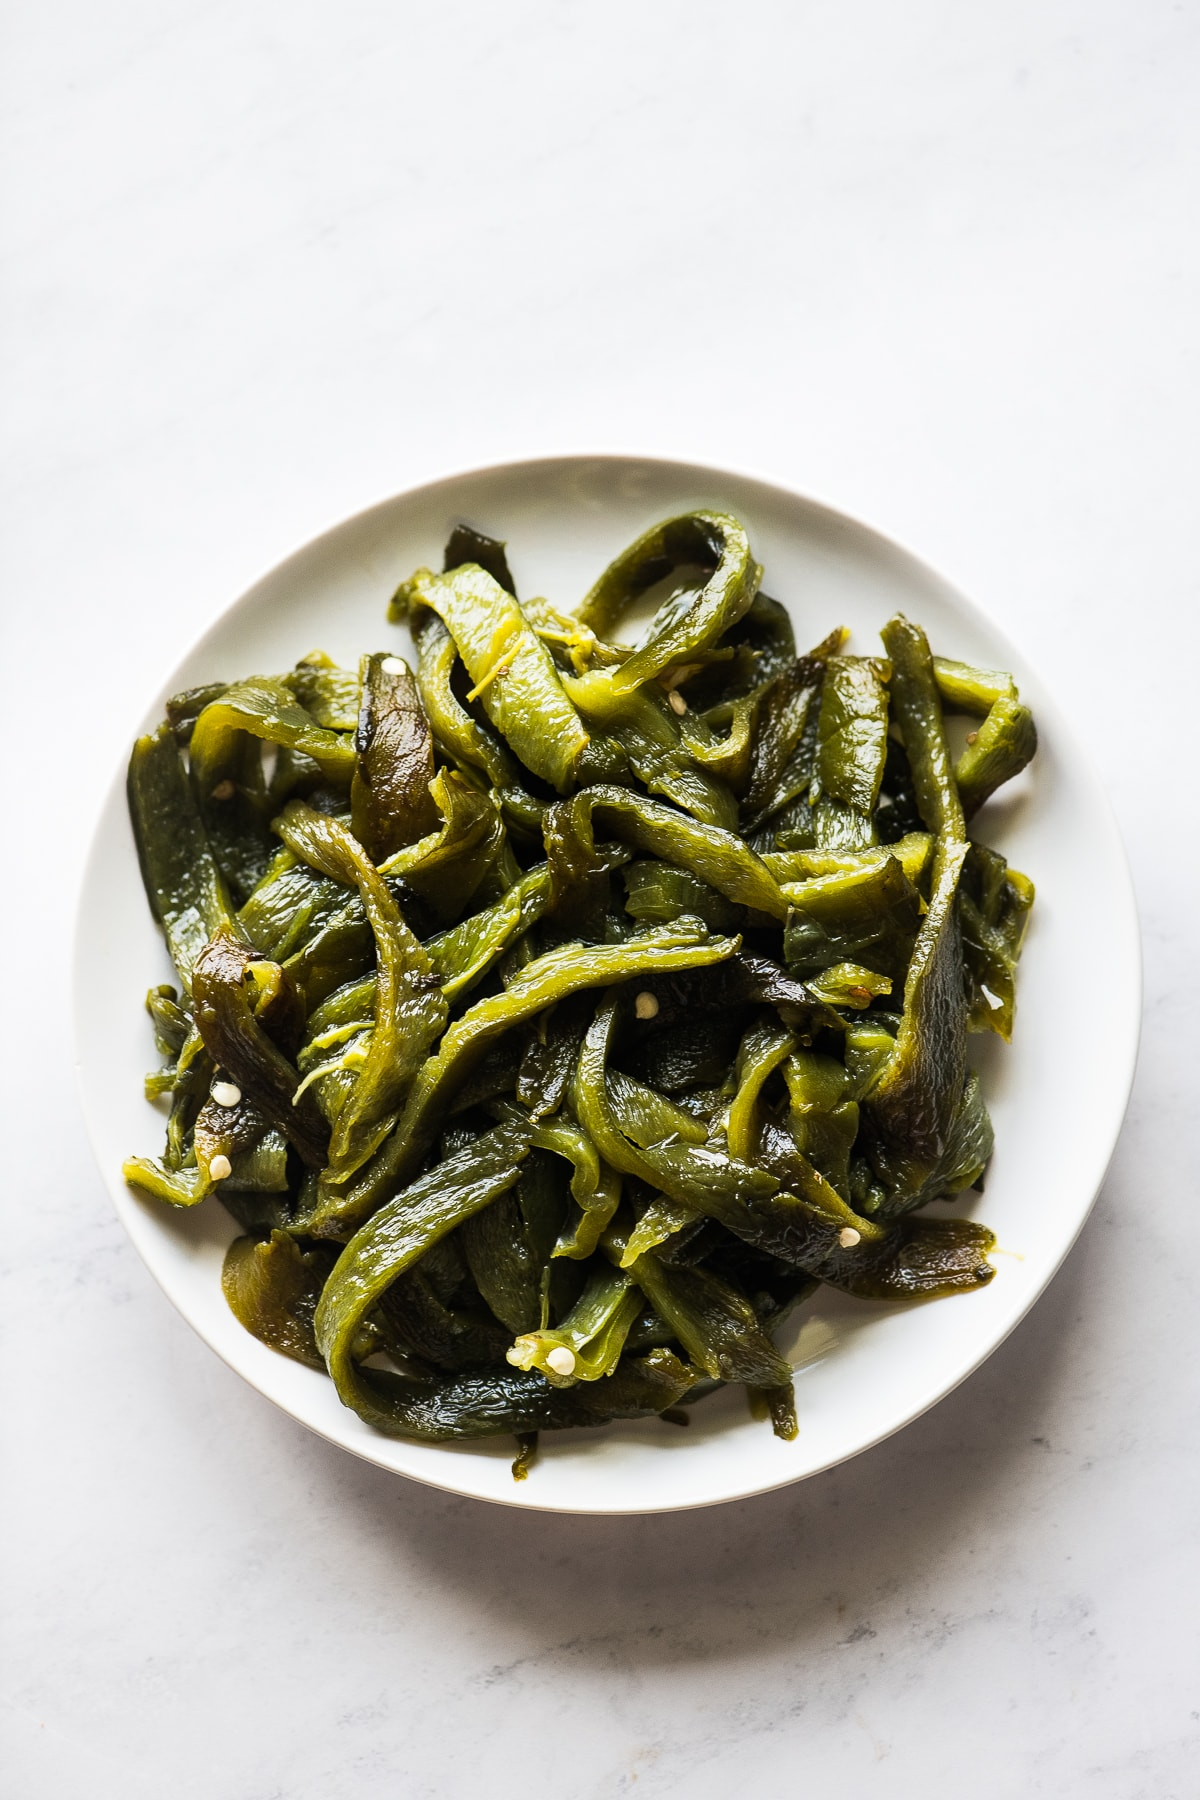 Sliced poblano pepper strips.